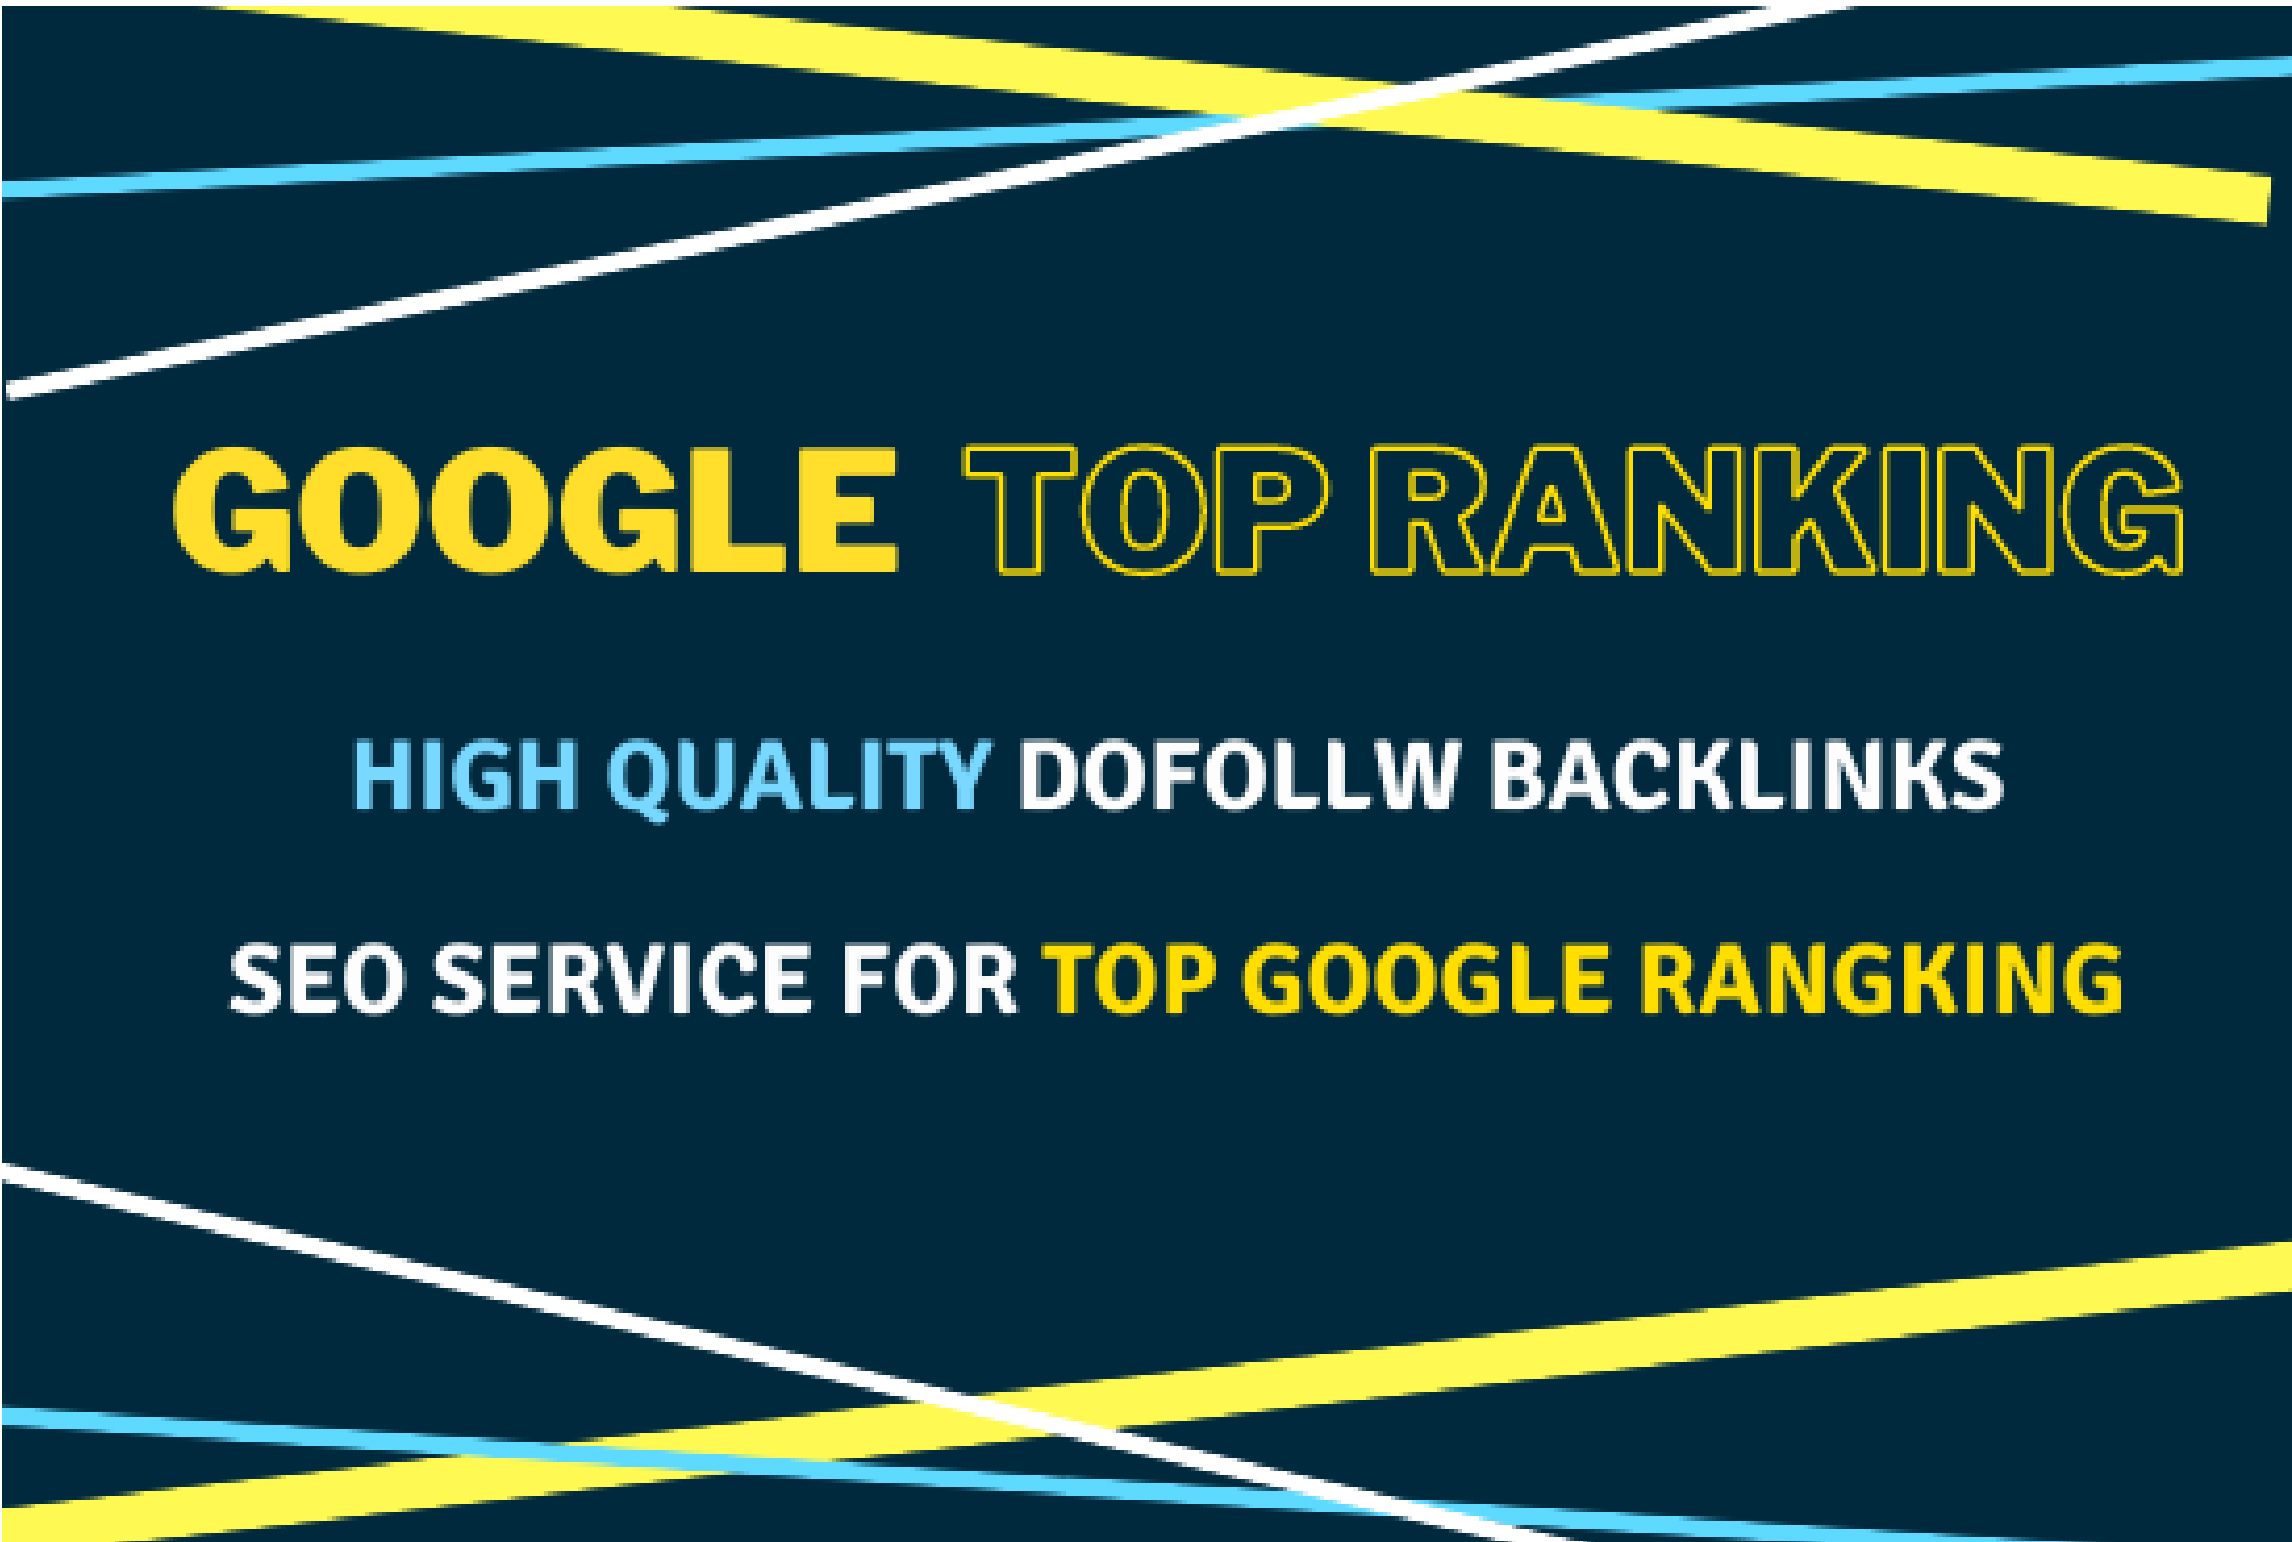 I will provide best google top ranking services with white hat SEO